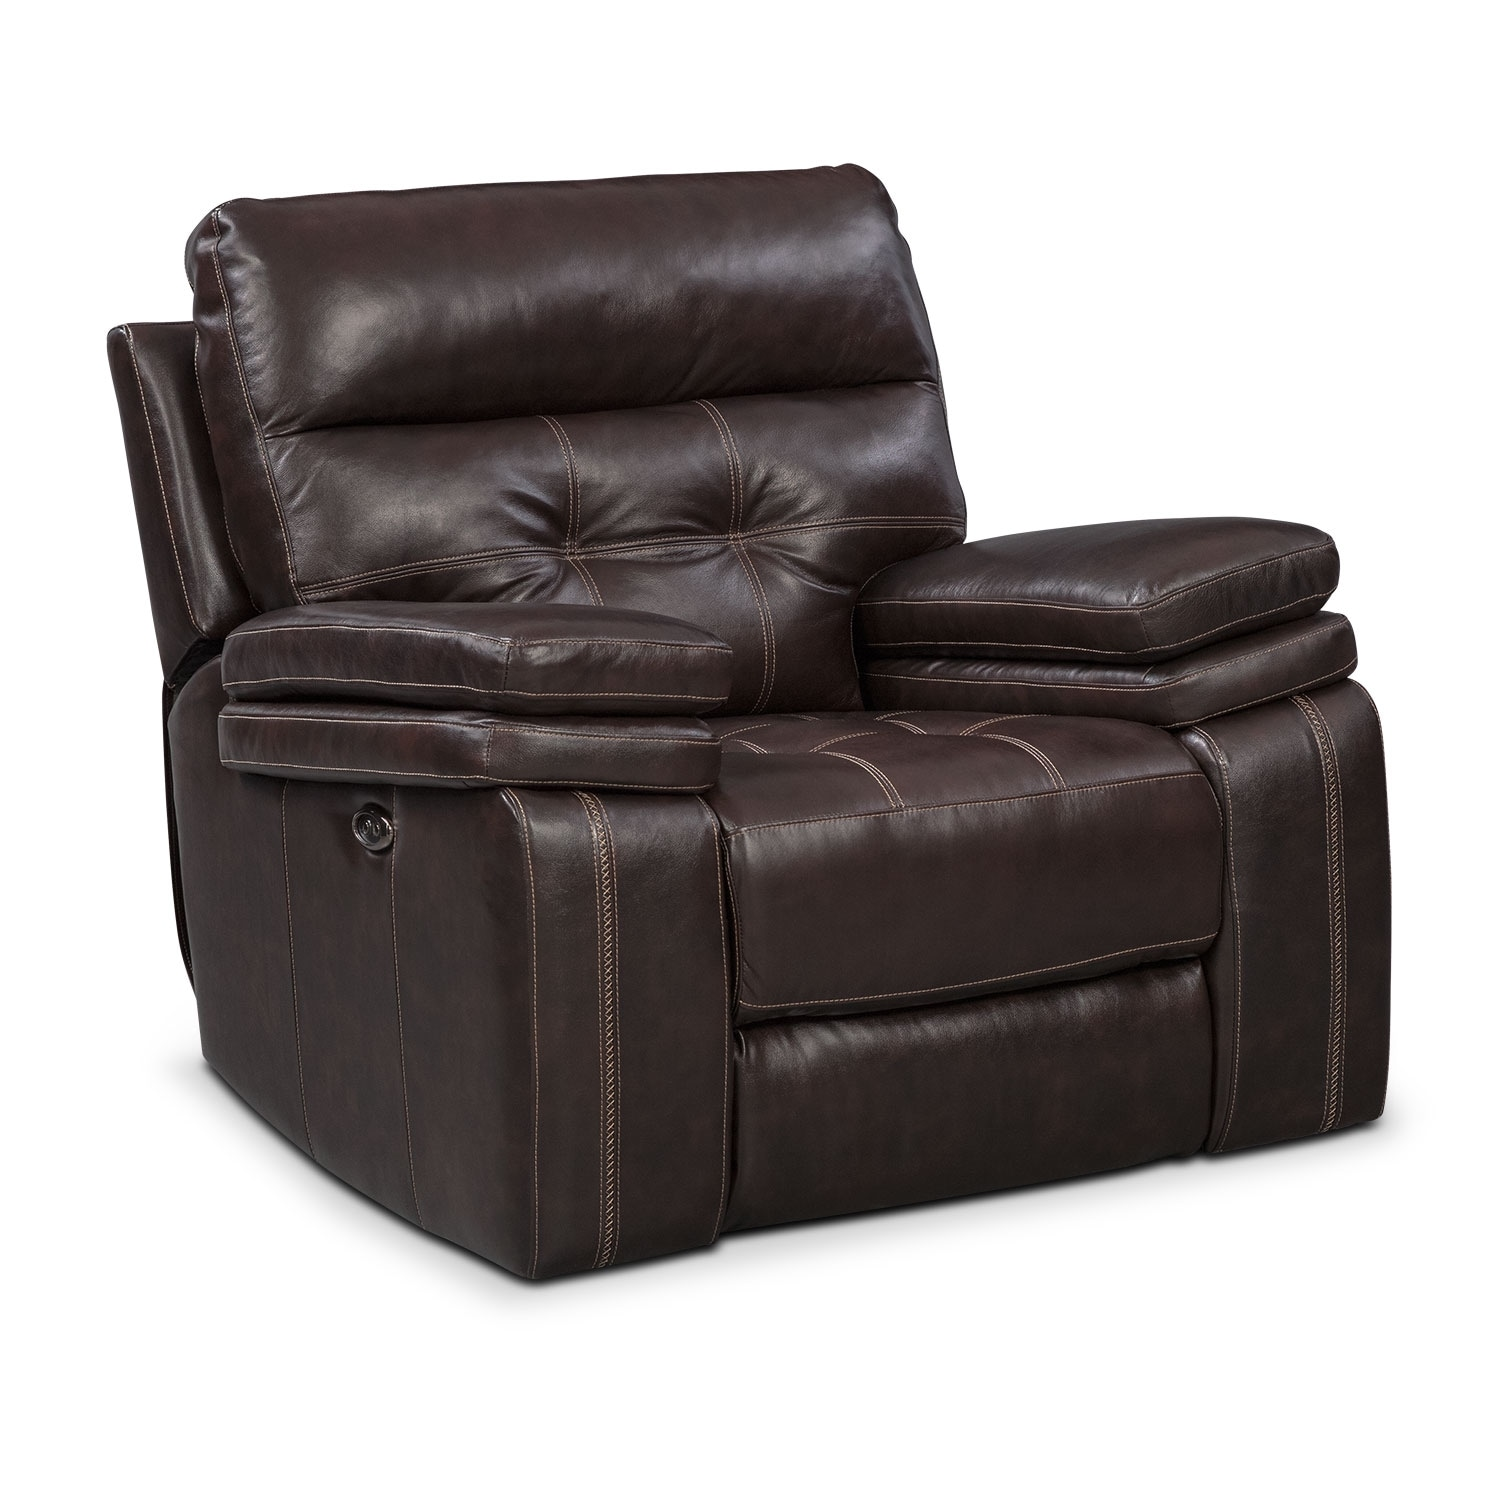 Brisco Brown Power Glider Recliner